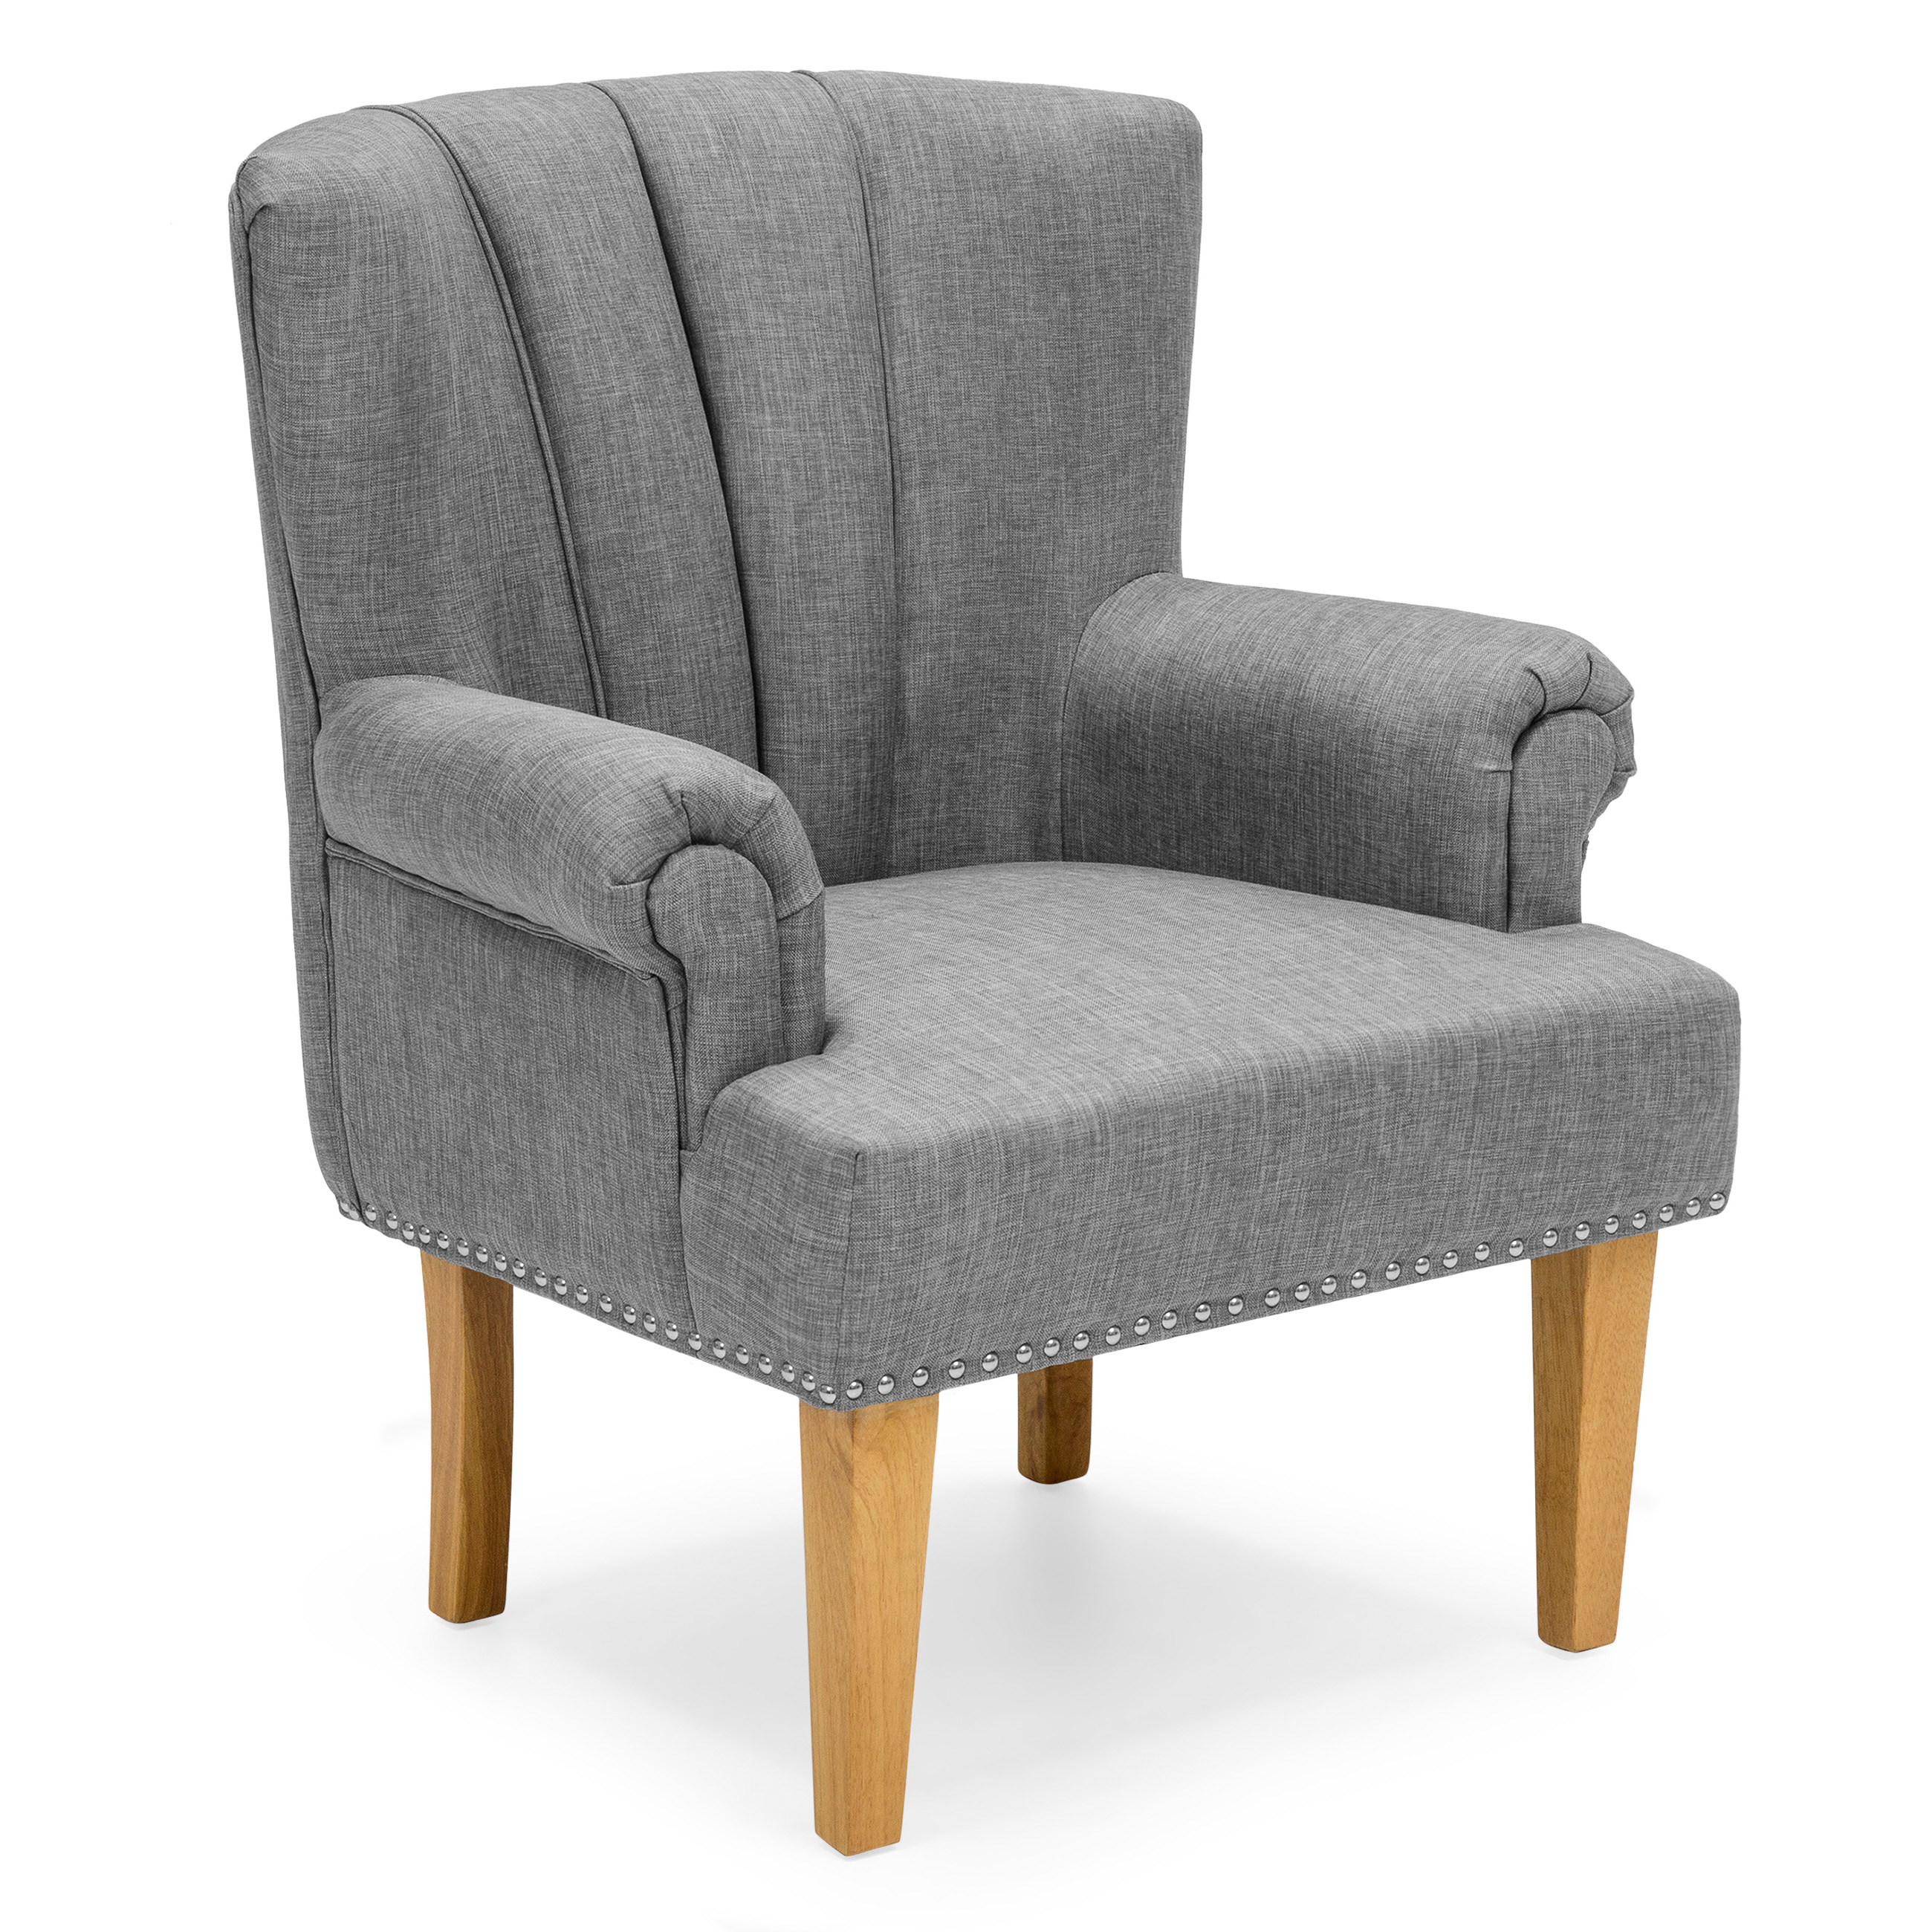 Best Choice Products Living Room Accent Chair w  Nailhead Detail, Linen Upholstery, Armrest, and Wood Legs (Gray) by Best Choice Products